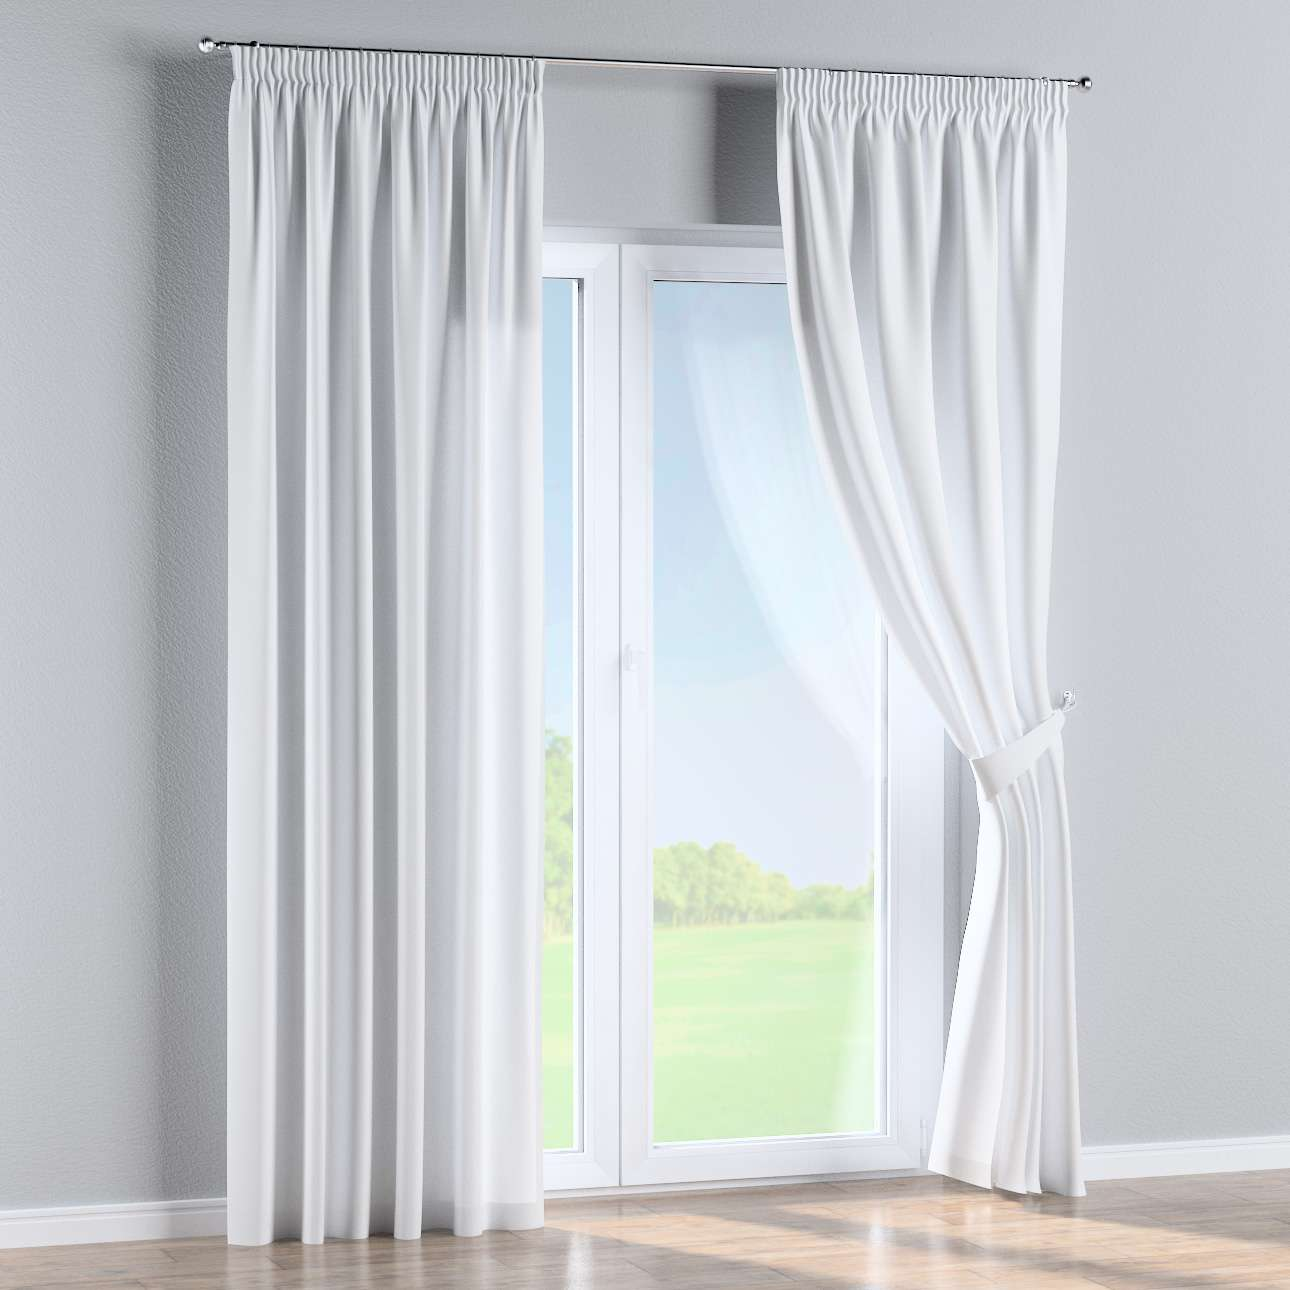 Pencil pleat curtains in collection Damasco, fabric: 141-78